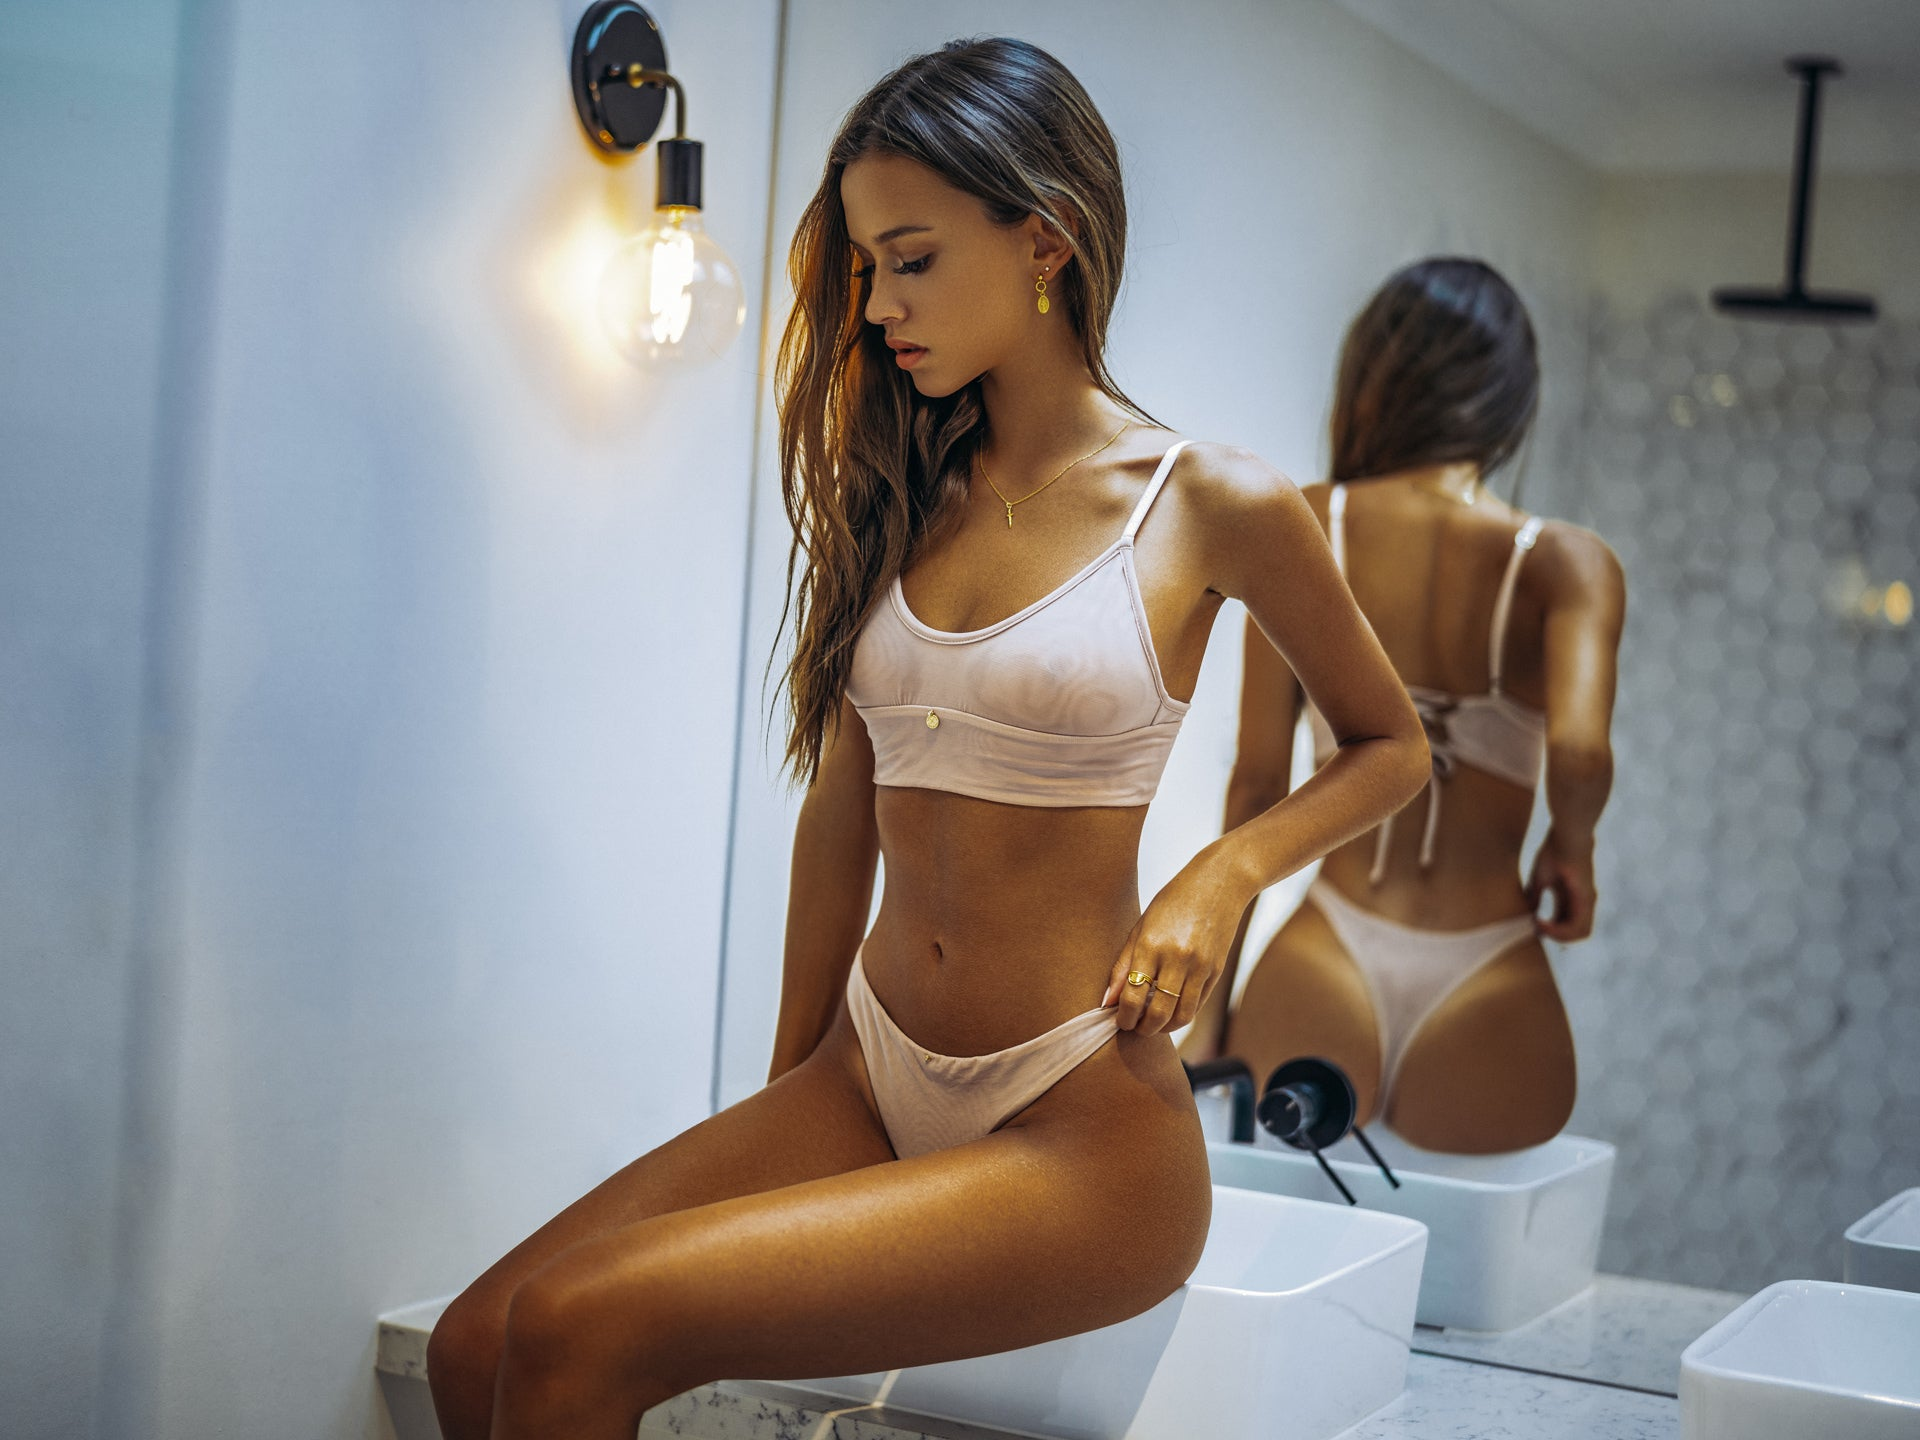 Isabelle Mathers wearing the For You Nude Triangle Set in a bathroom